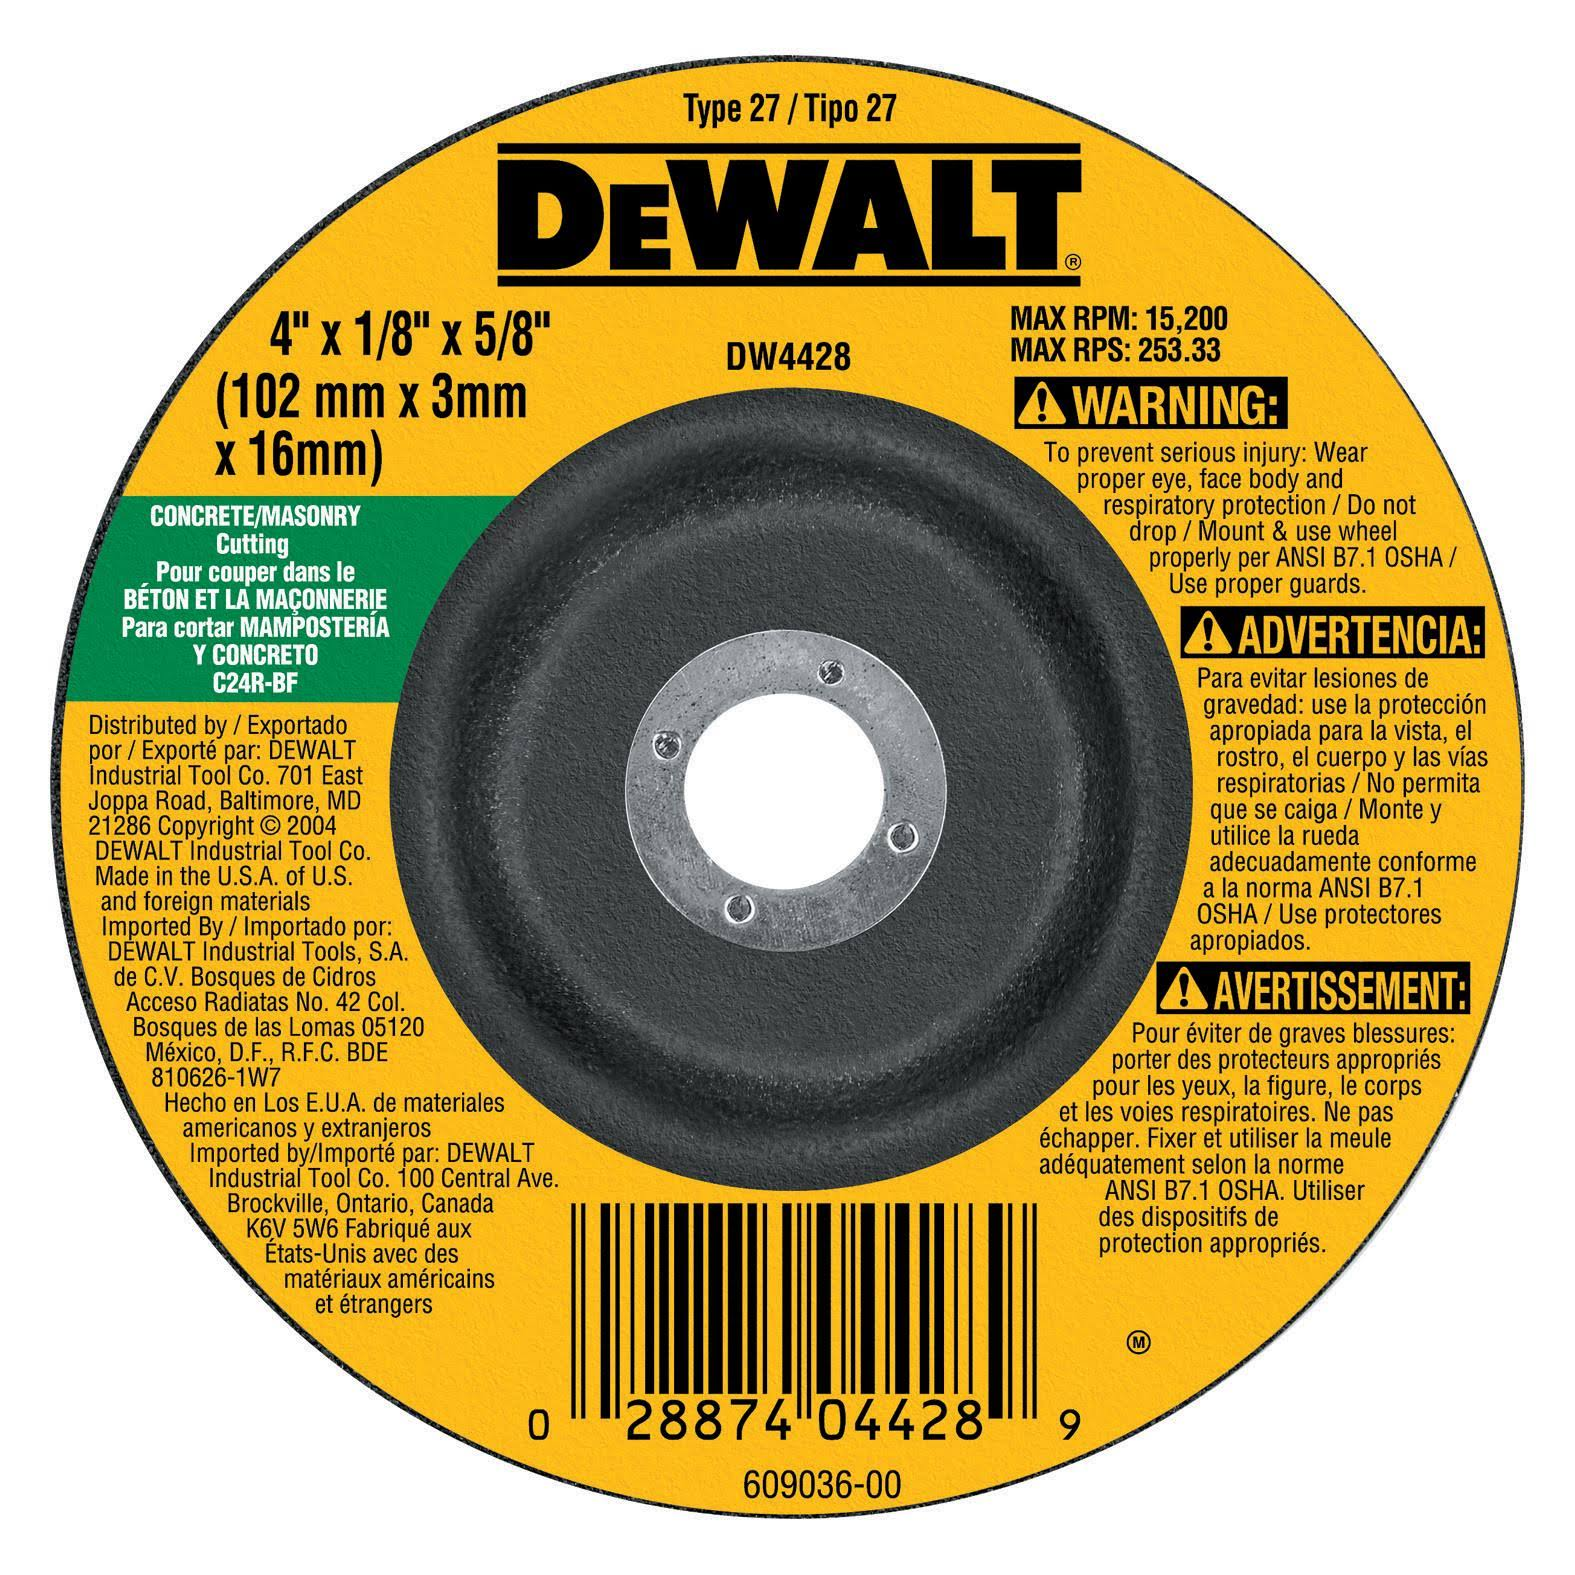 "Dewalt High Performance Masonry Cutting Grinding Wheel - 4"" x 1/8"" x 5/8"""